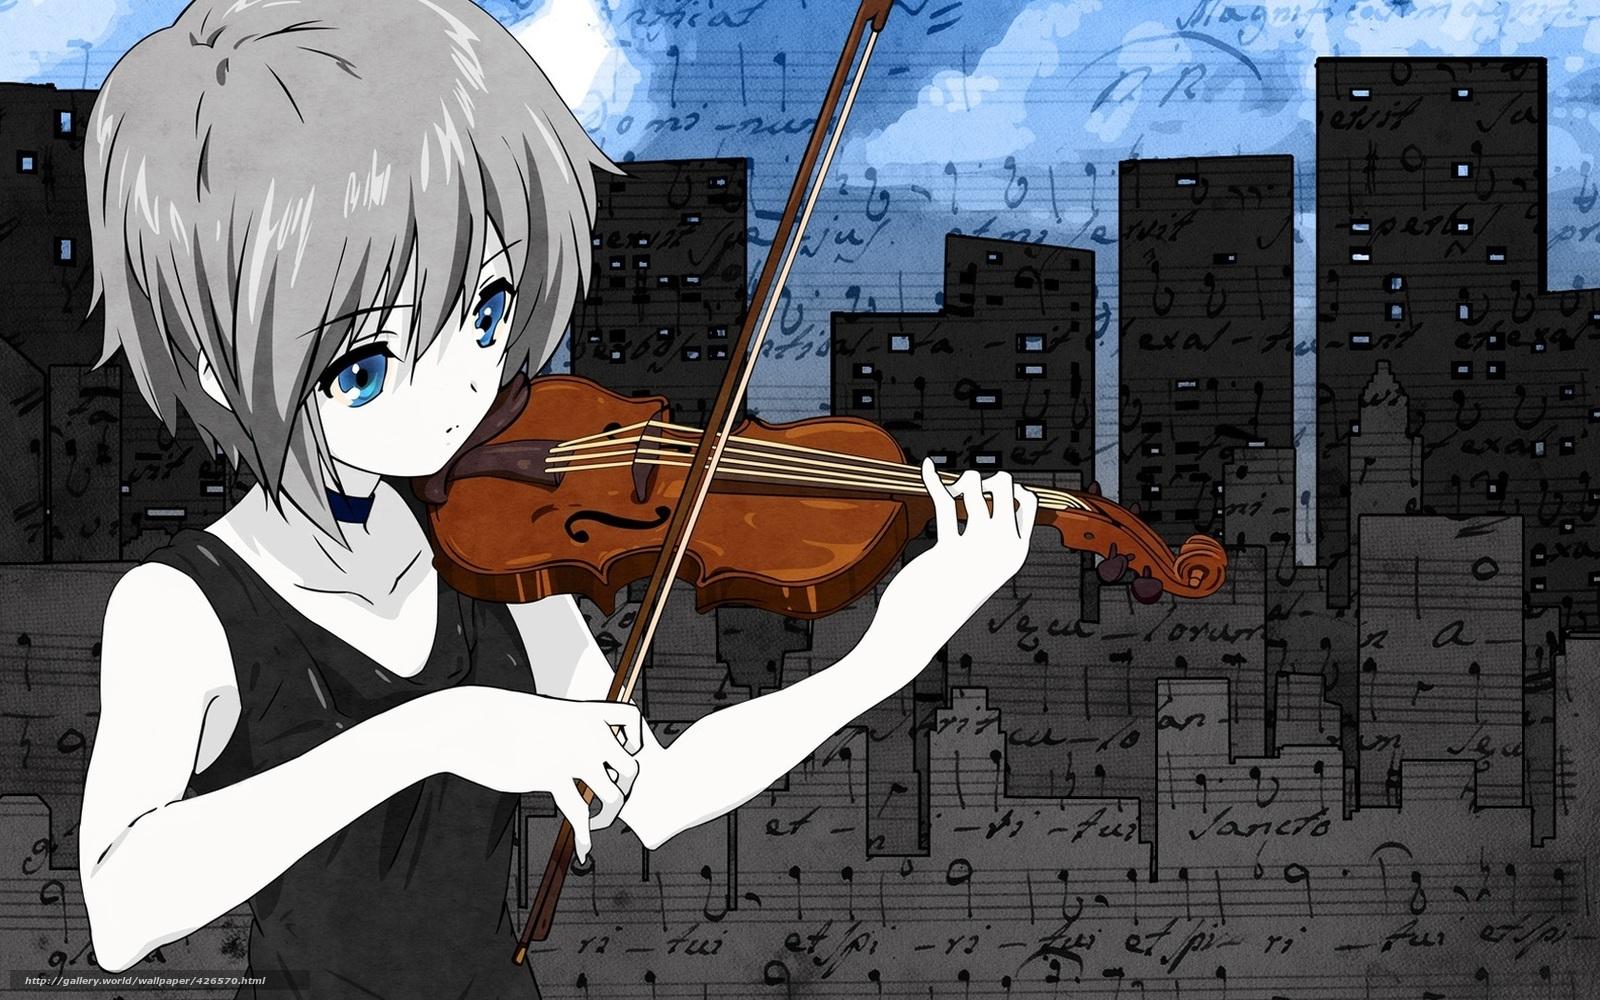 Download Wallpaper Music Violin Art Anime Free Desktop In The Resolution 1680x1050 Picture No426570